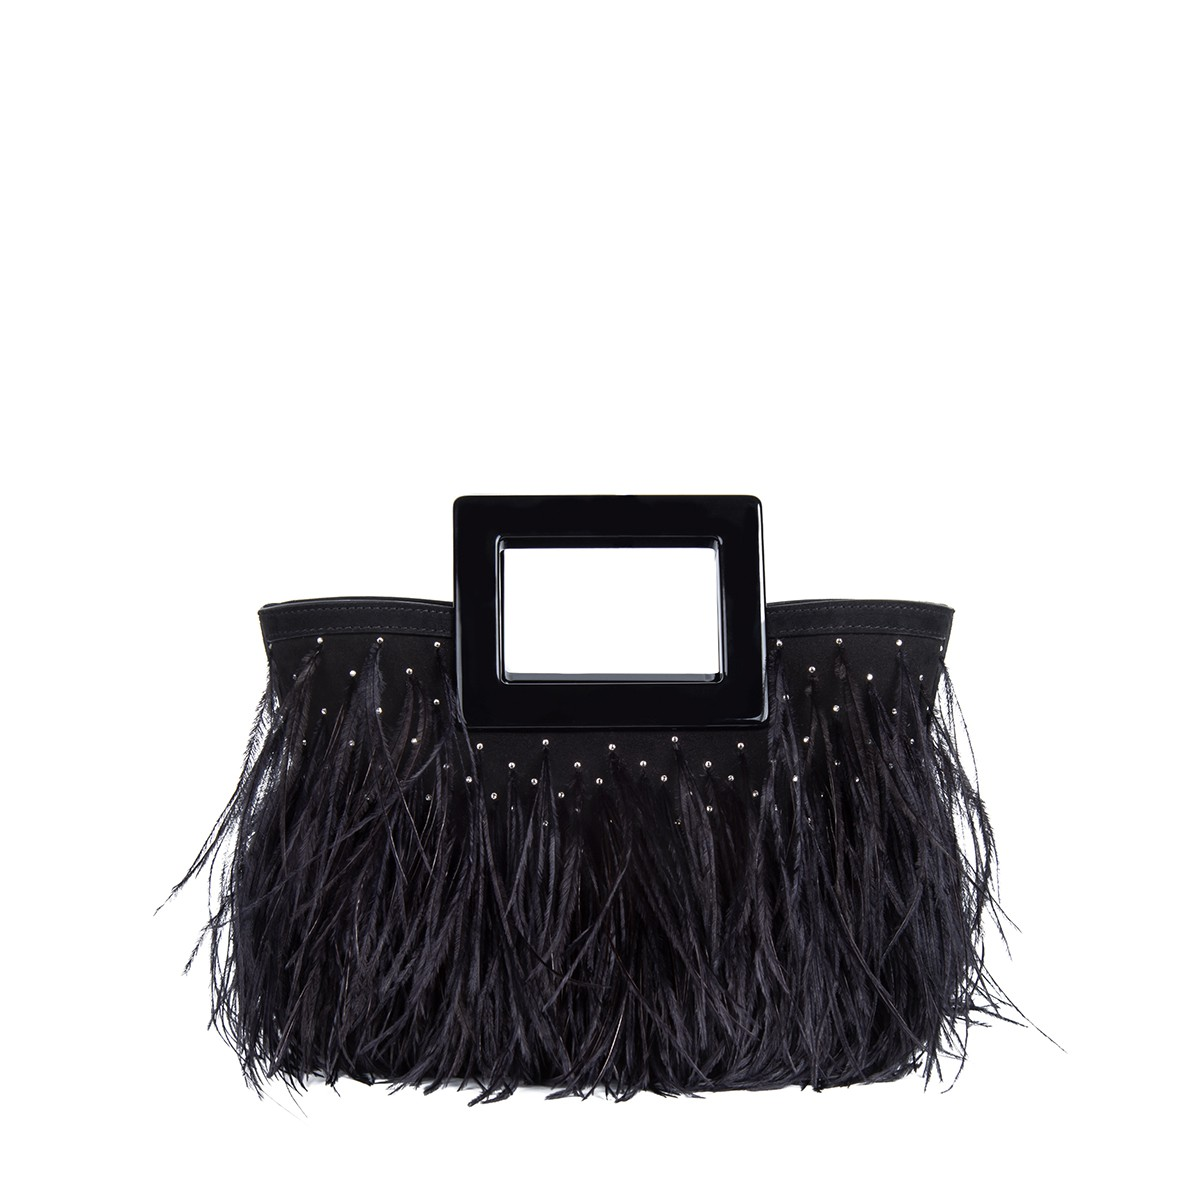 Micro Riviera in Feathered Black Suede1